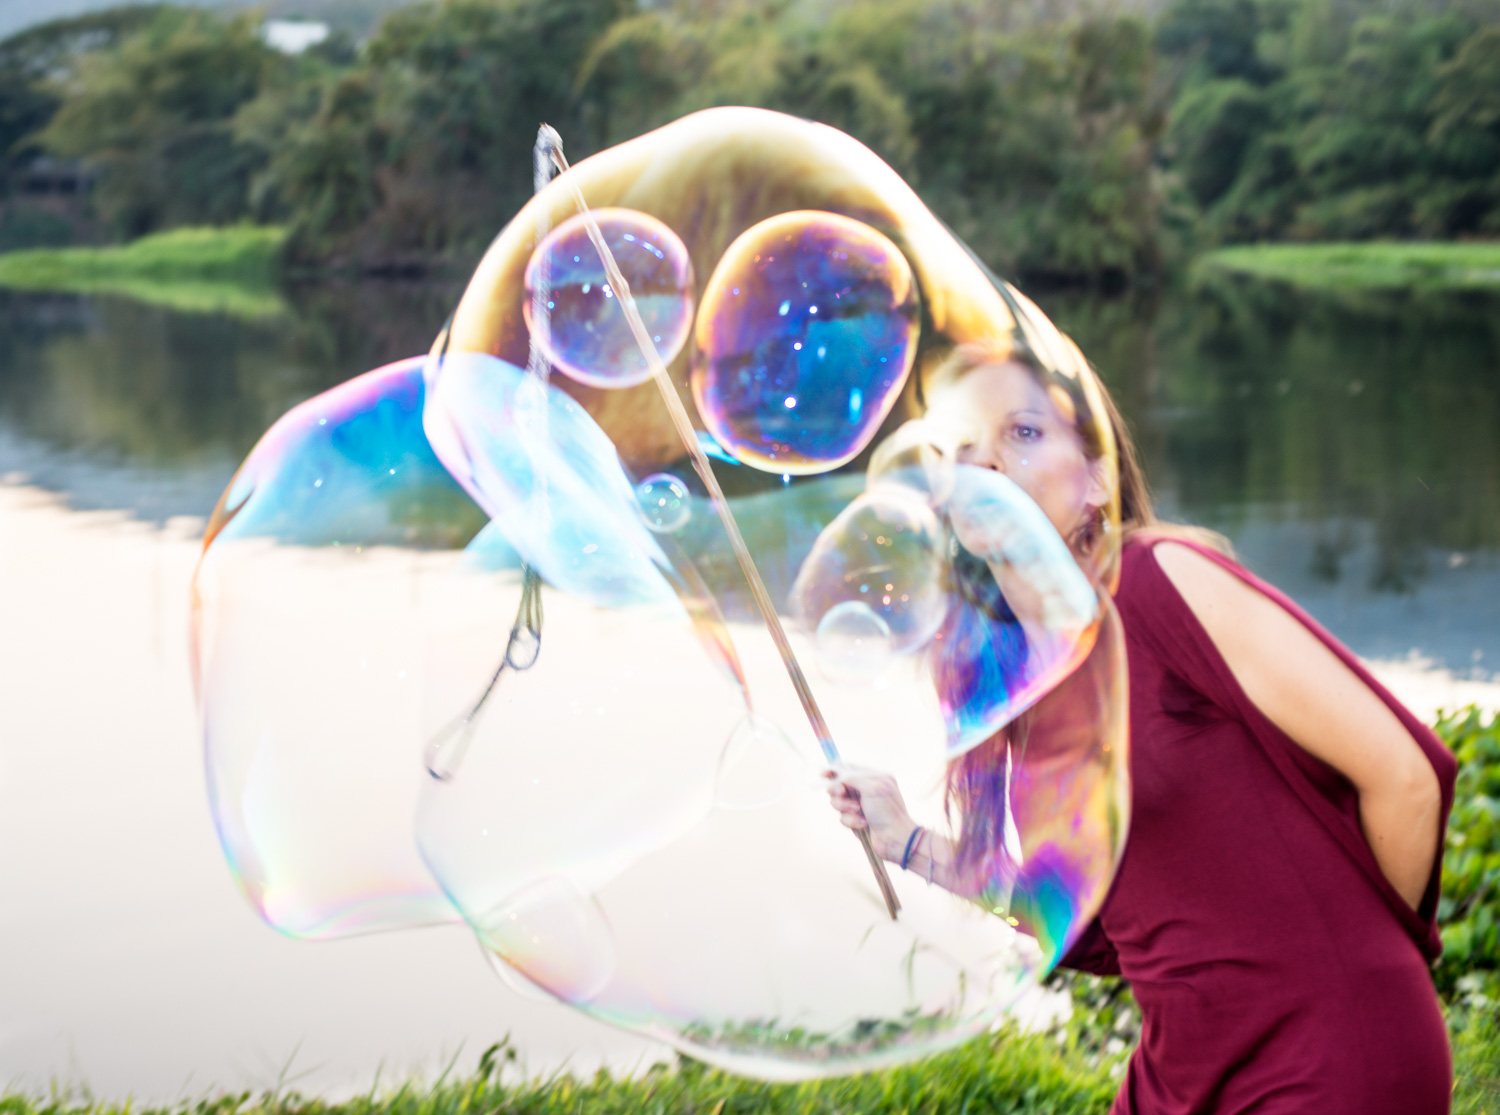 How to Make Well Exposed Photos Every Time Giant Soap Bubbles